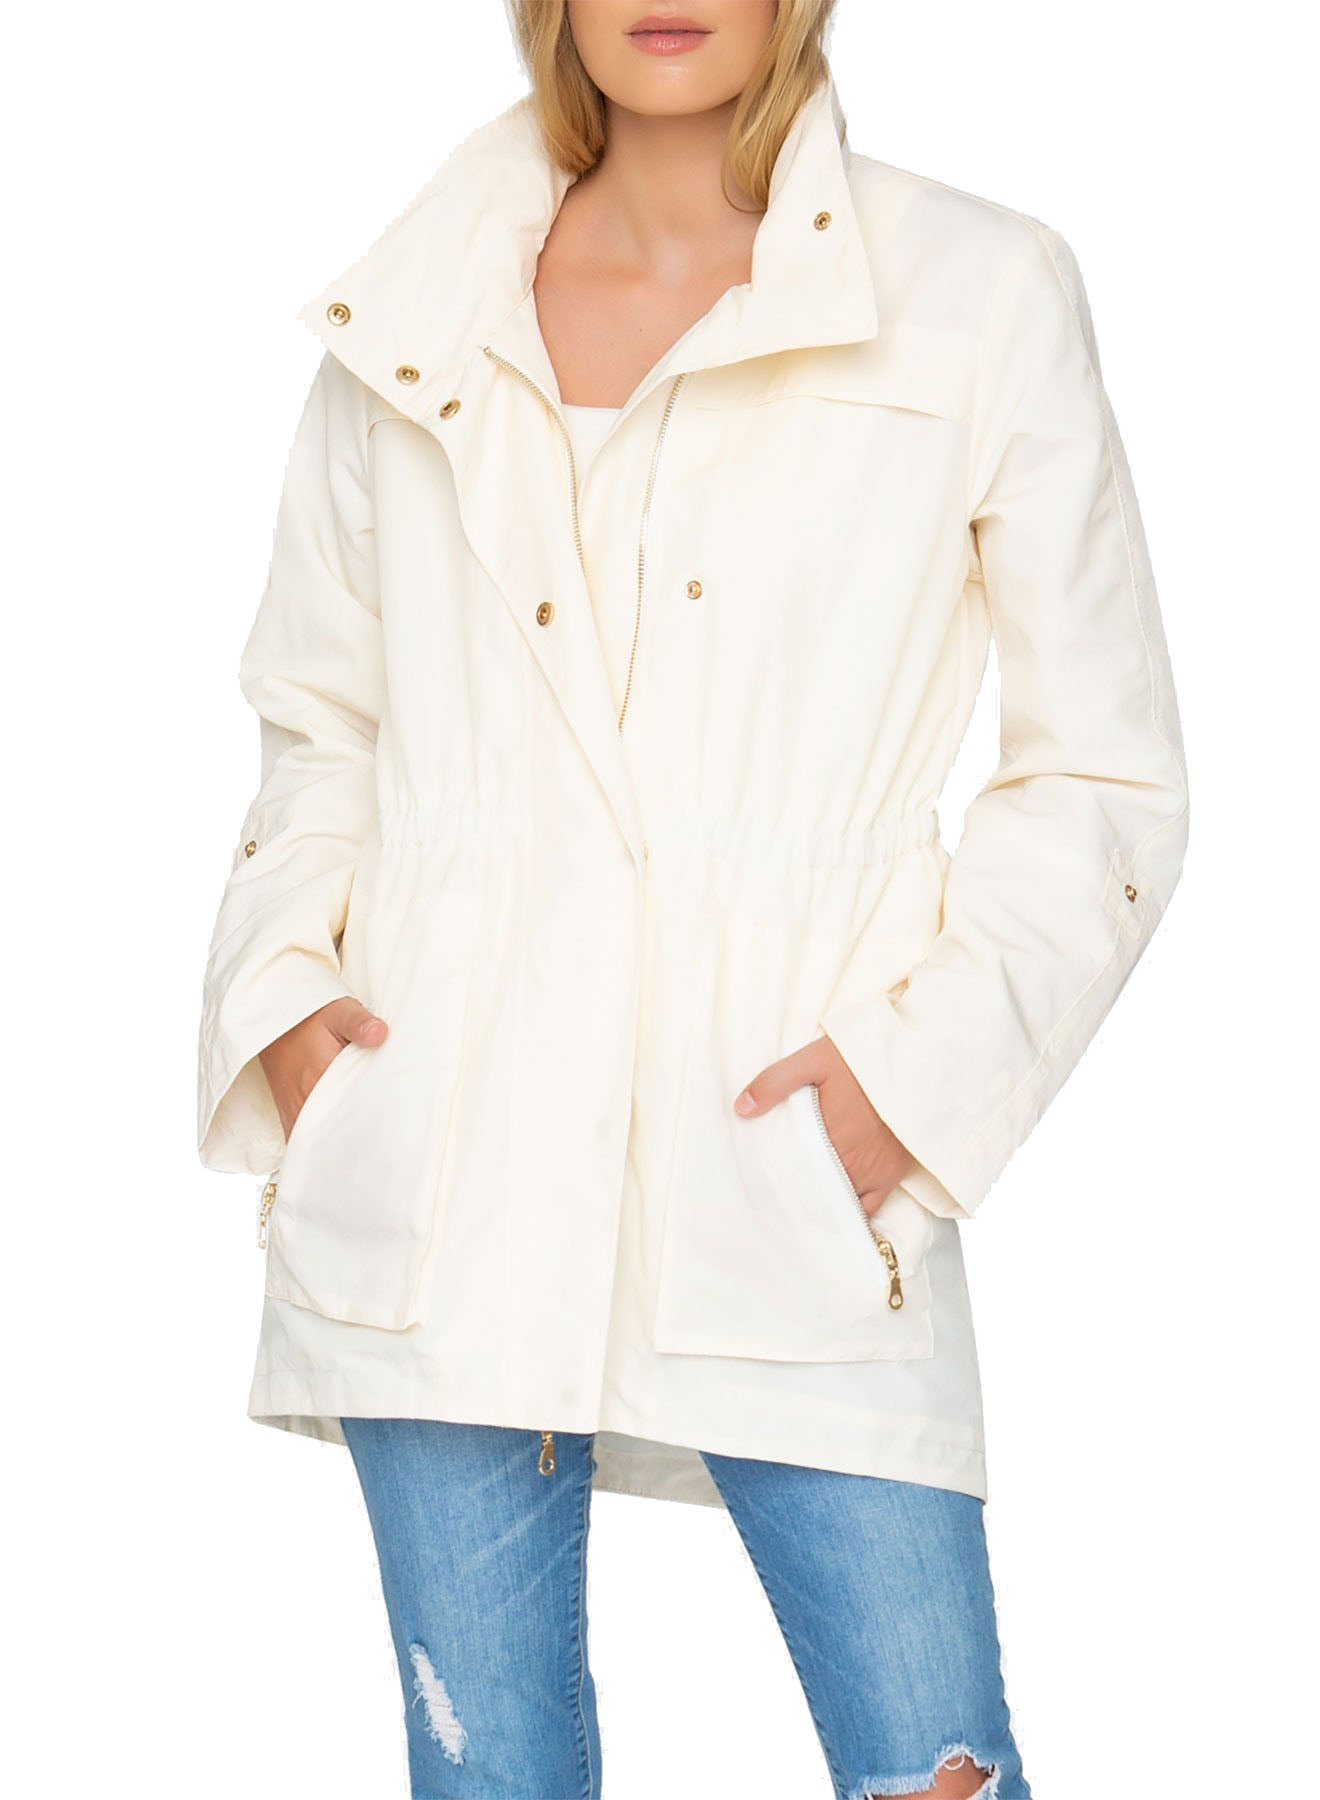 Tart Collections - Cory Jacket (T90688, White)